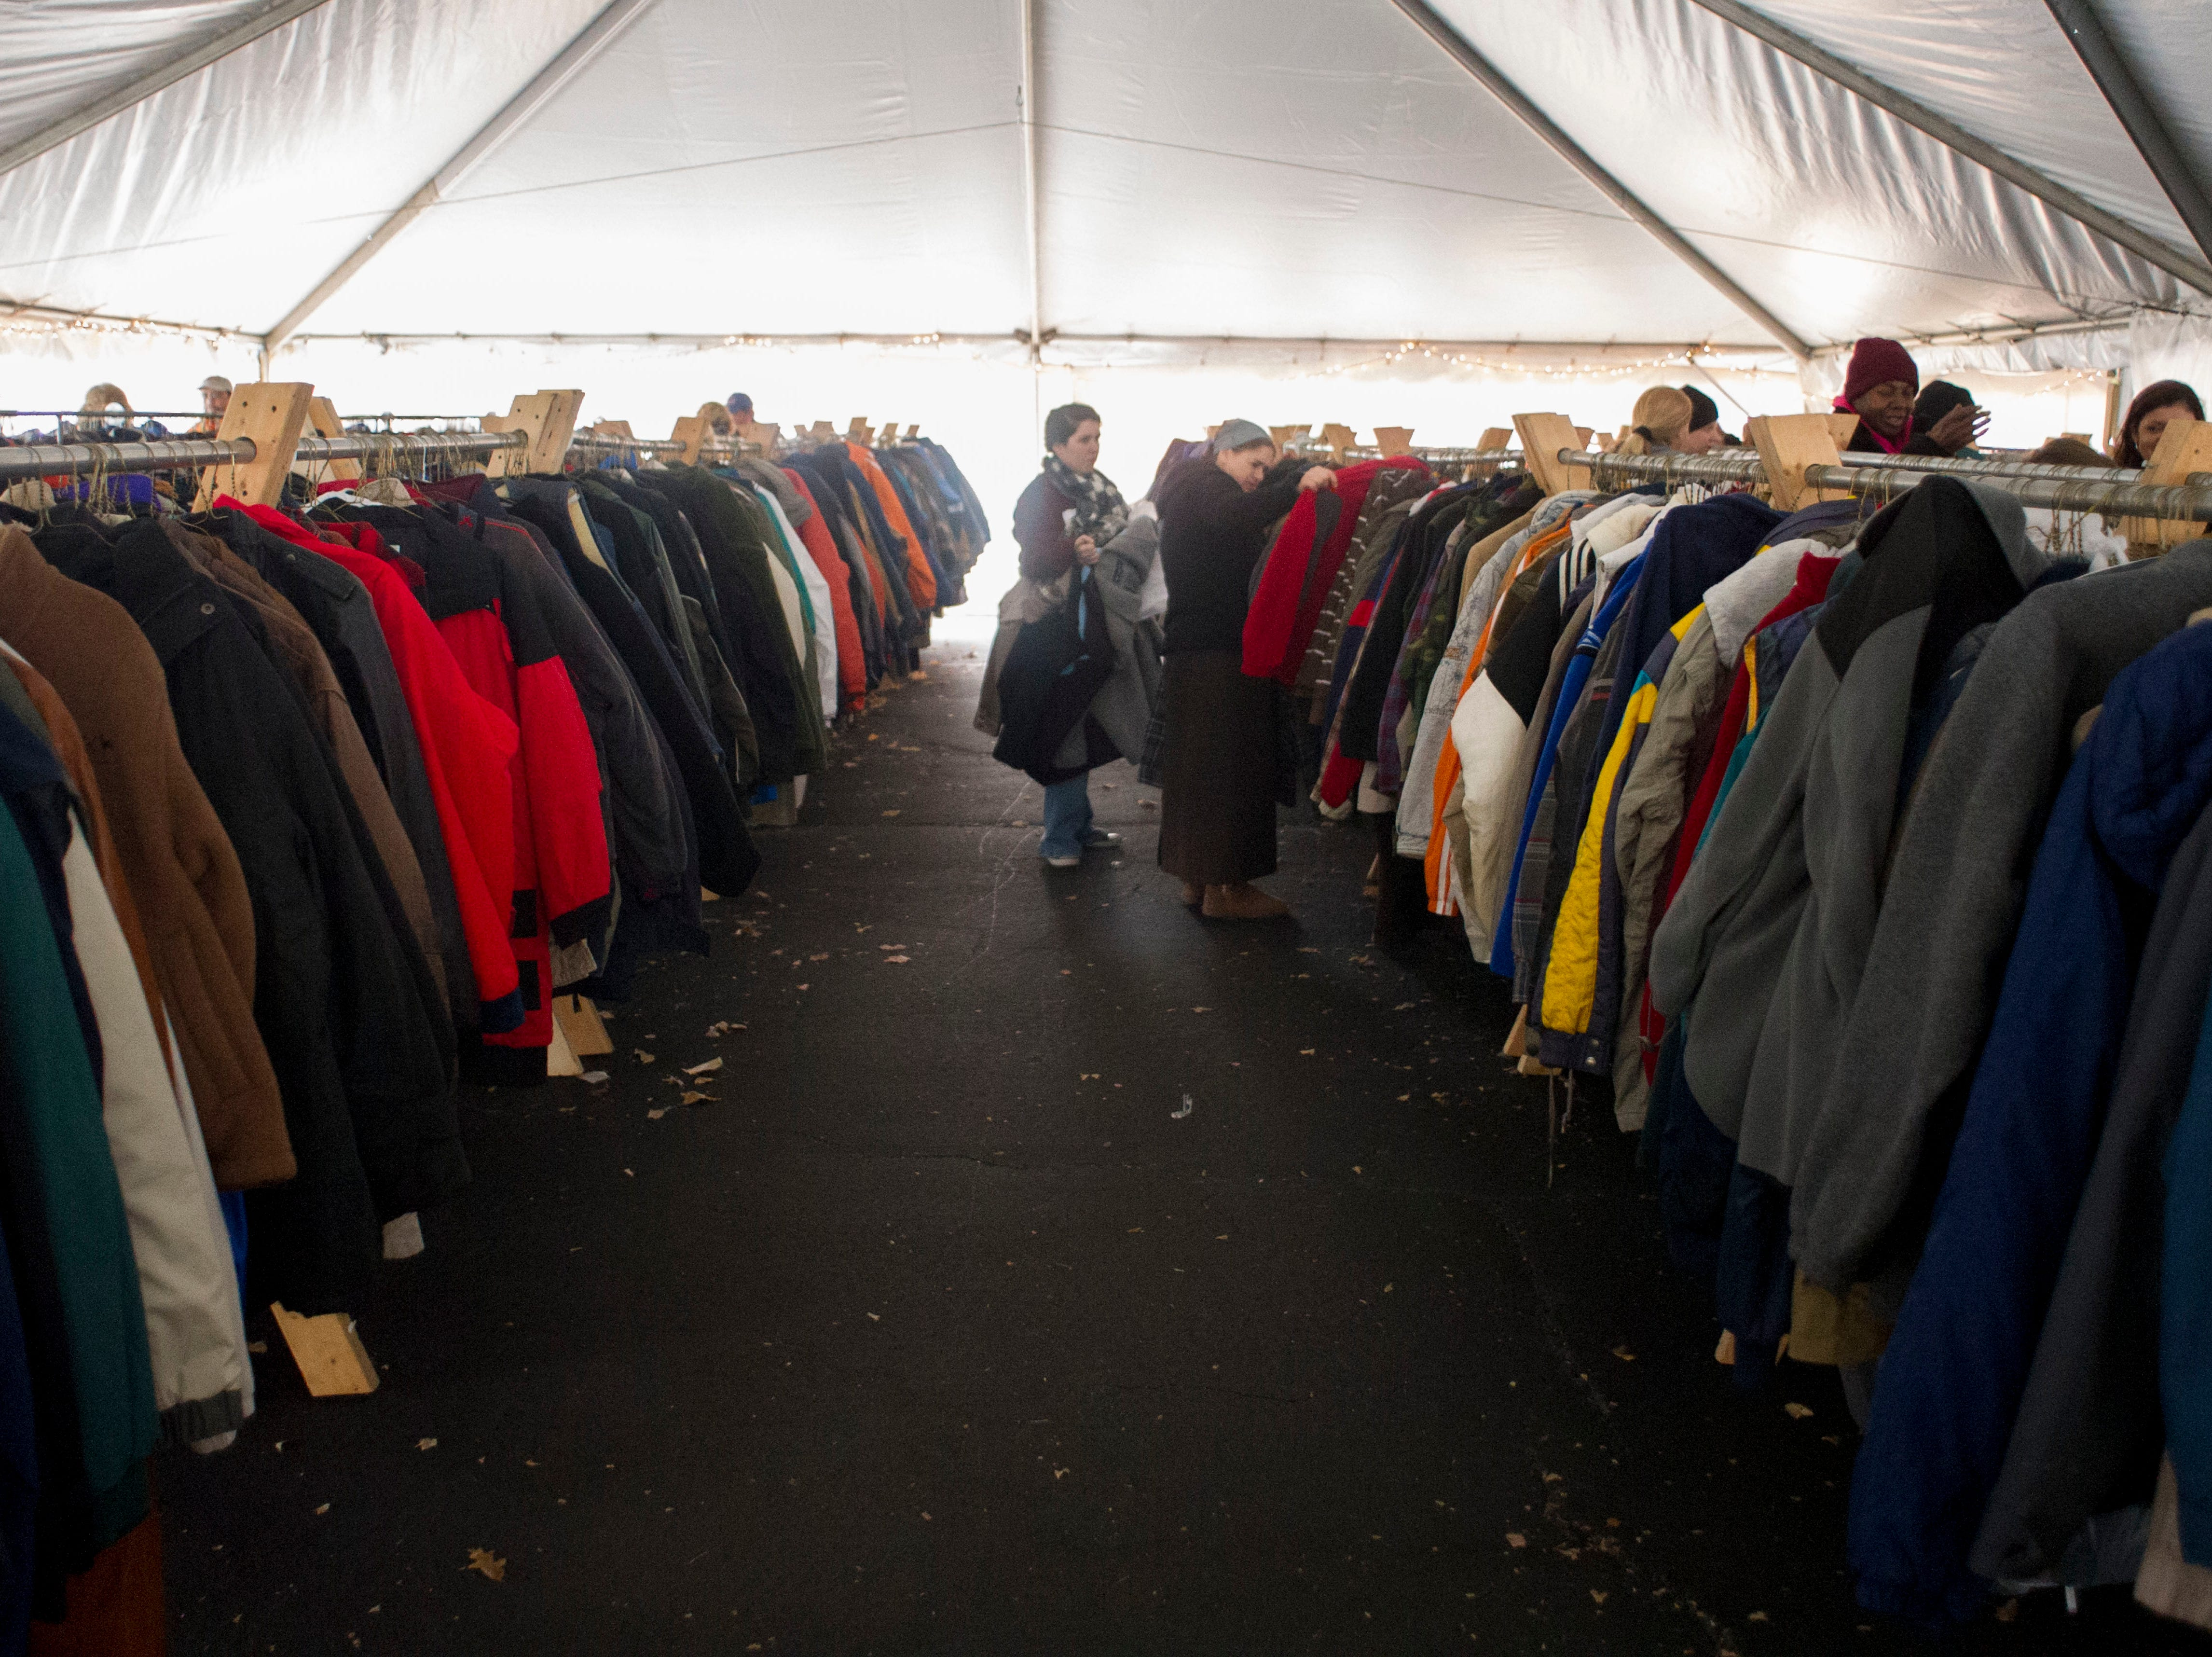 Close to 8000 coats fill a large canopy tent outside of the KARM Thrift Store on Saturday, December 1, 2012 during the Knoxville Area Rescue Ministries annual Coat for the Cold event. According to KARM president, Burt Rosen, they Ministriy will give out close to 2000 coats during the annual event.